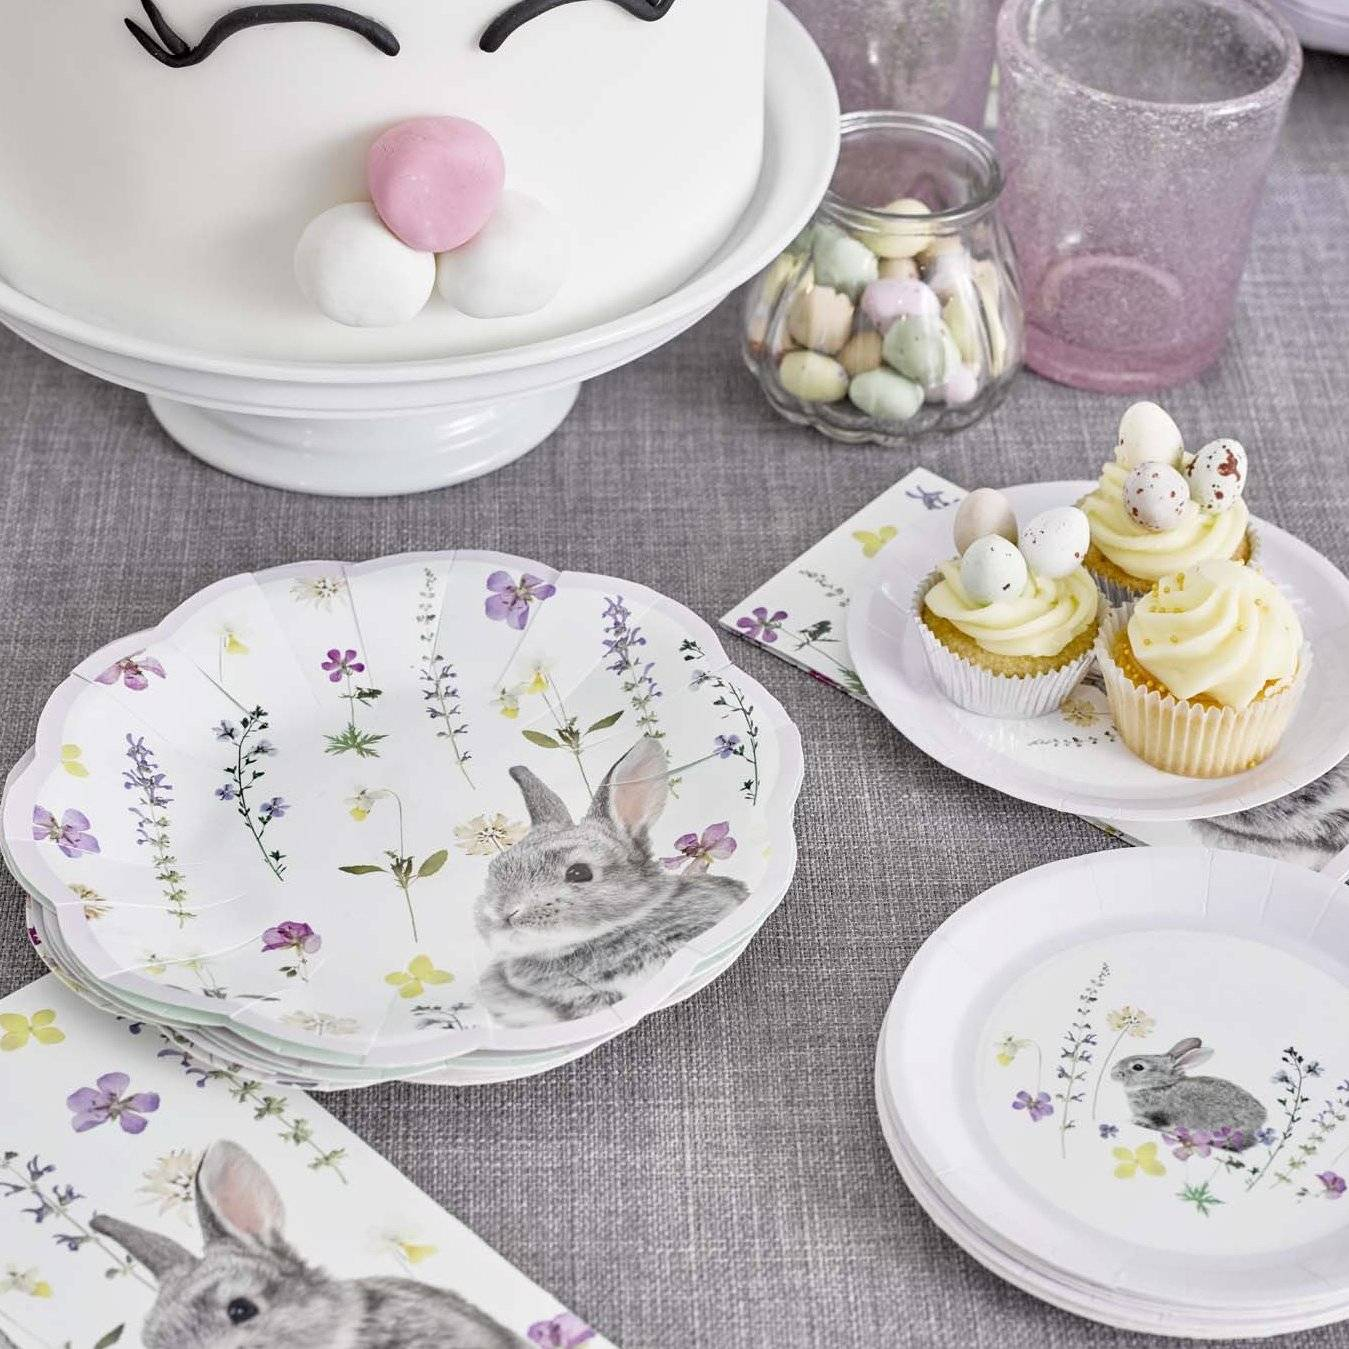 Easter party table set with Truly Bunny paper plates, Truly Bunny napkins and other Easter decorations and food.